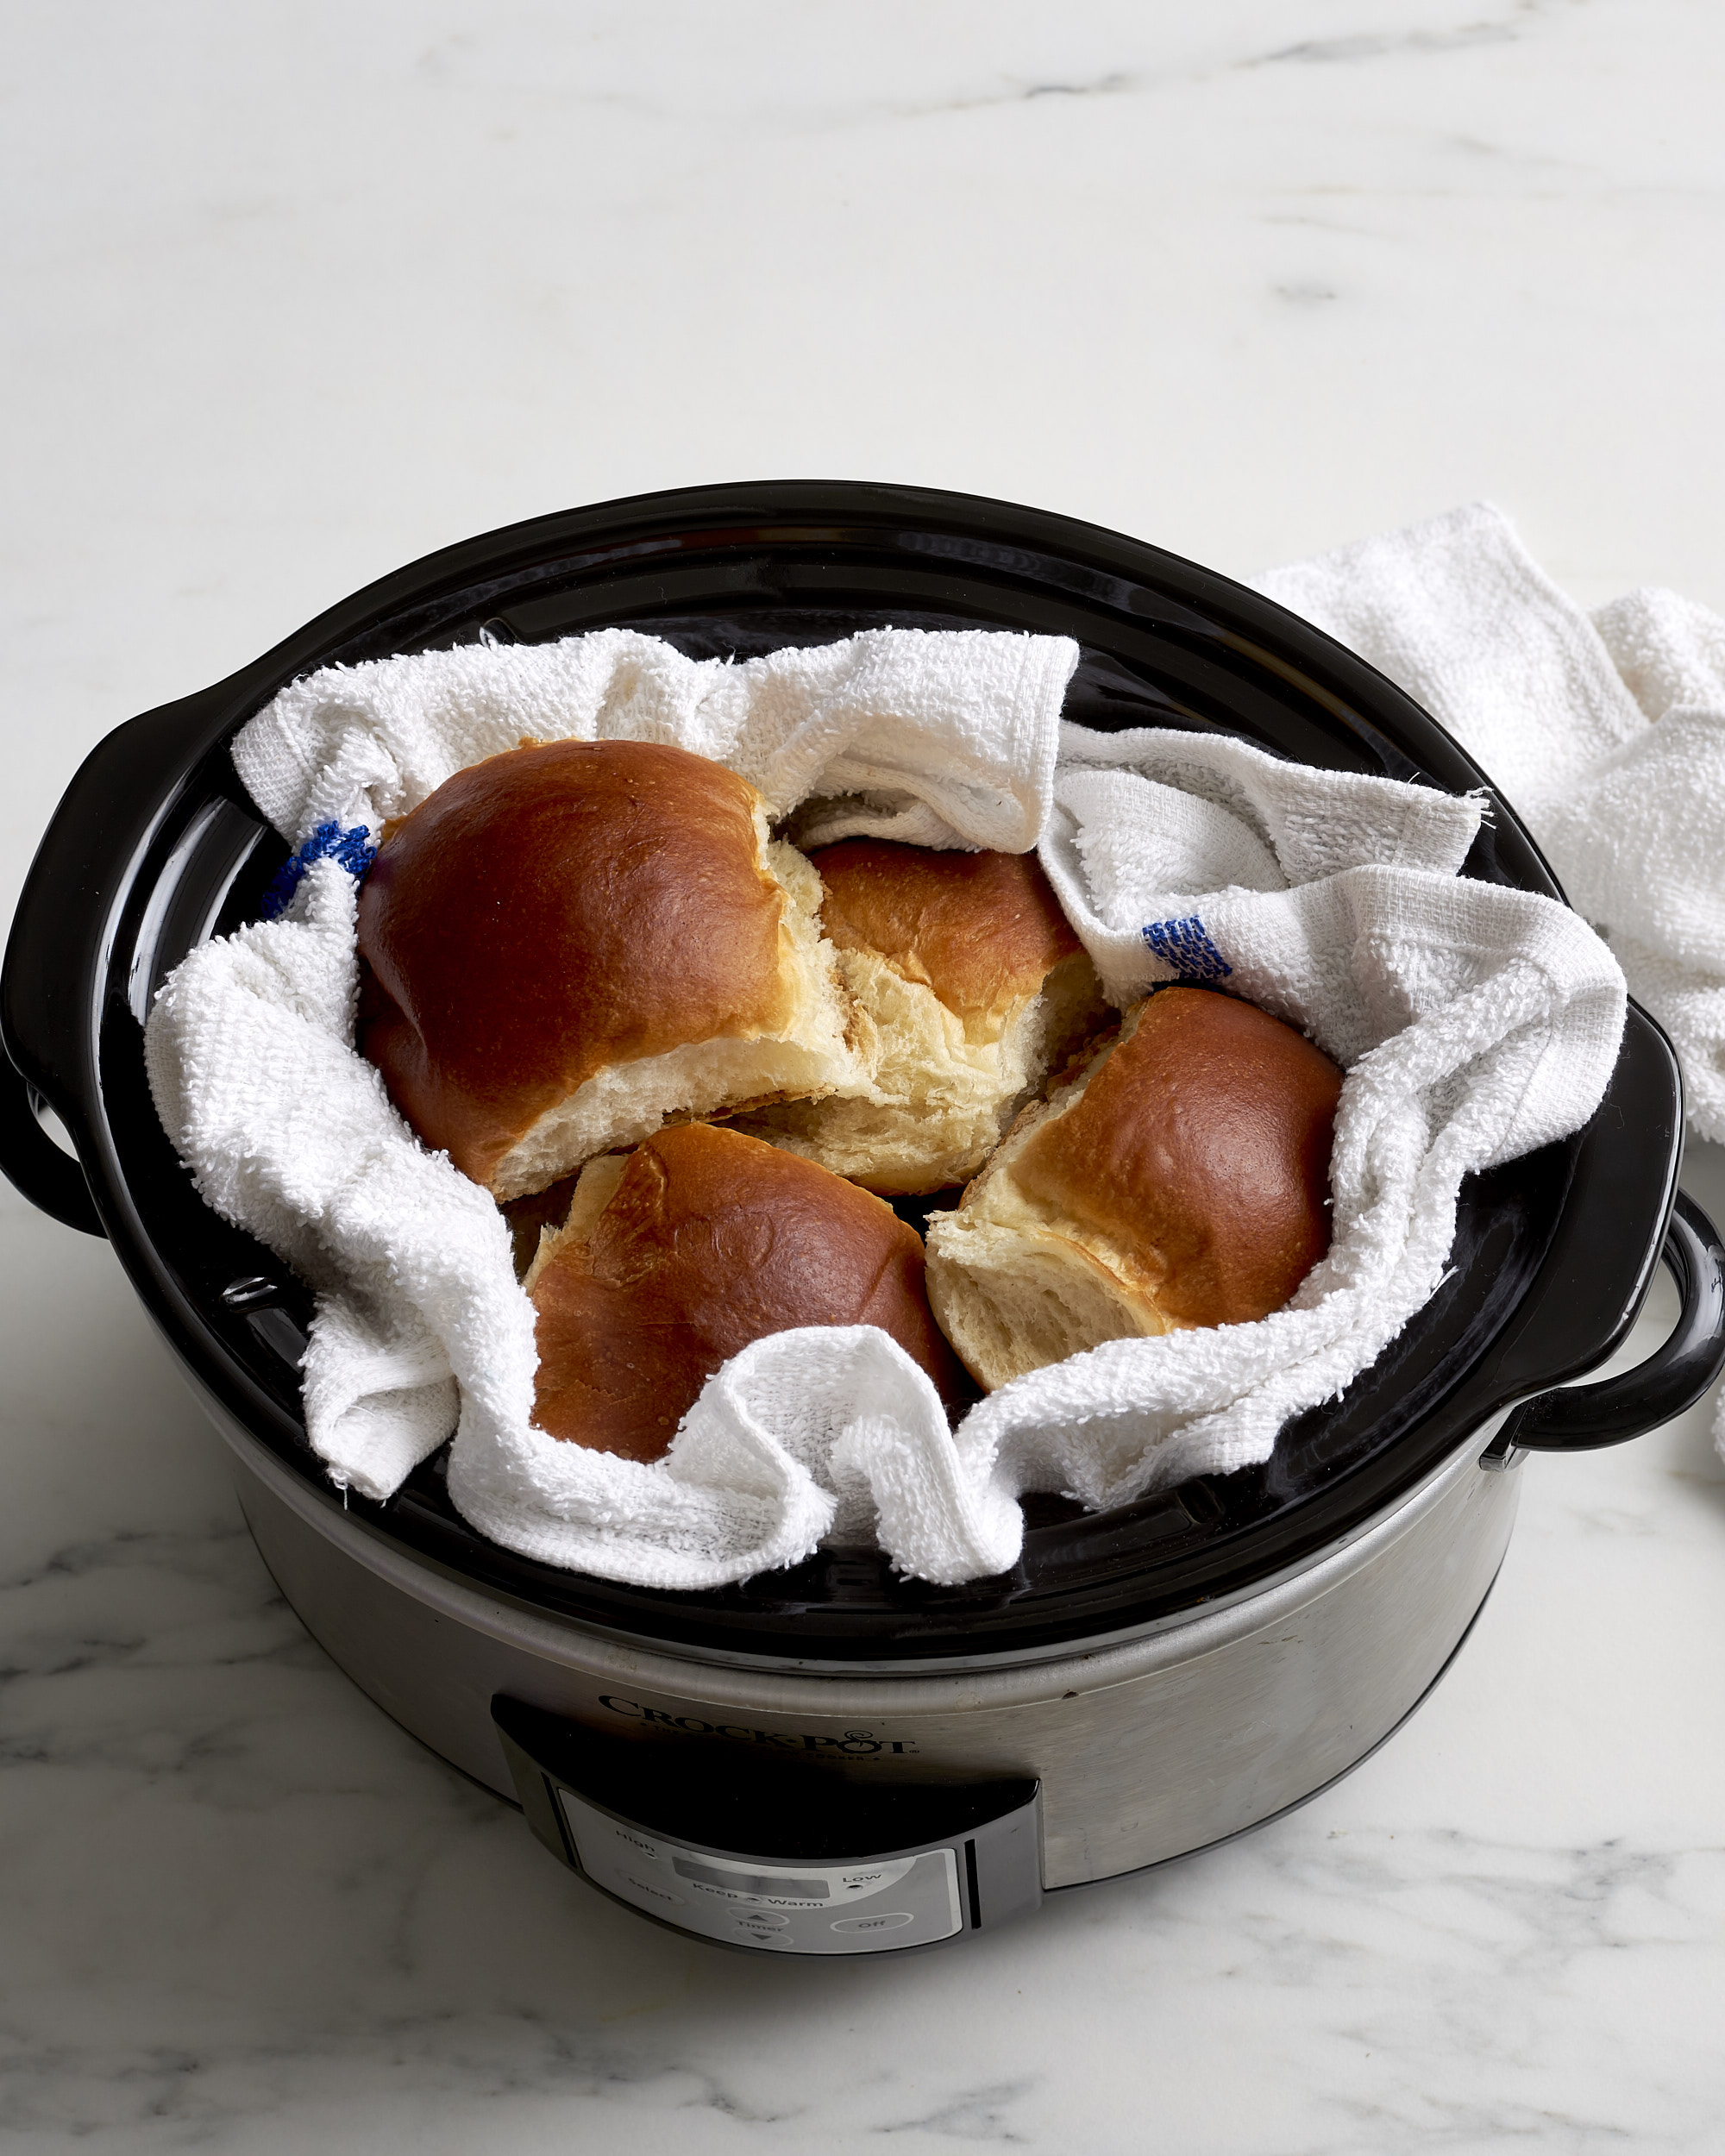 How To Reheat Dinner Rolls: The Best, Simplest Method